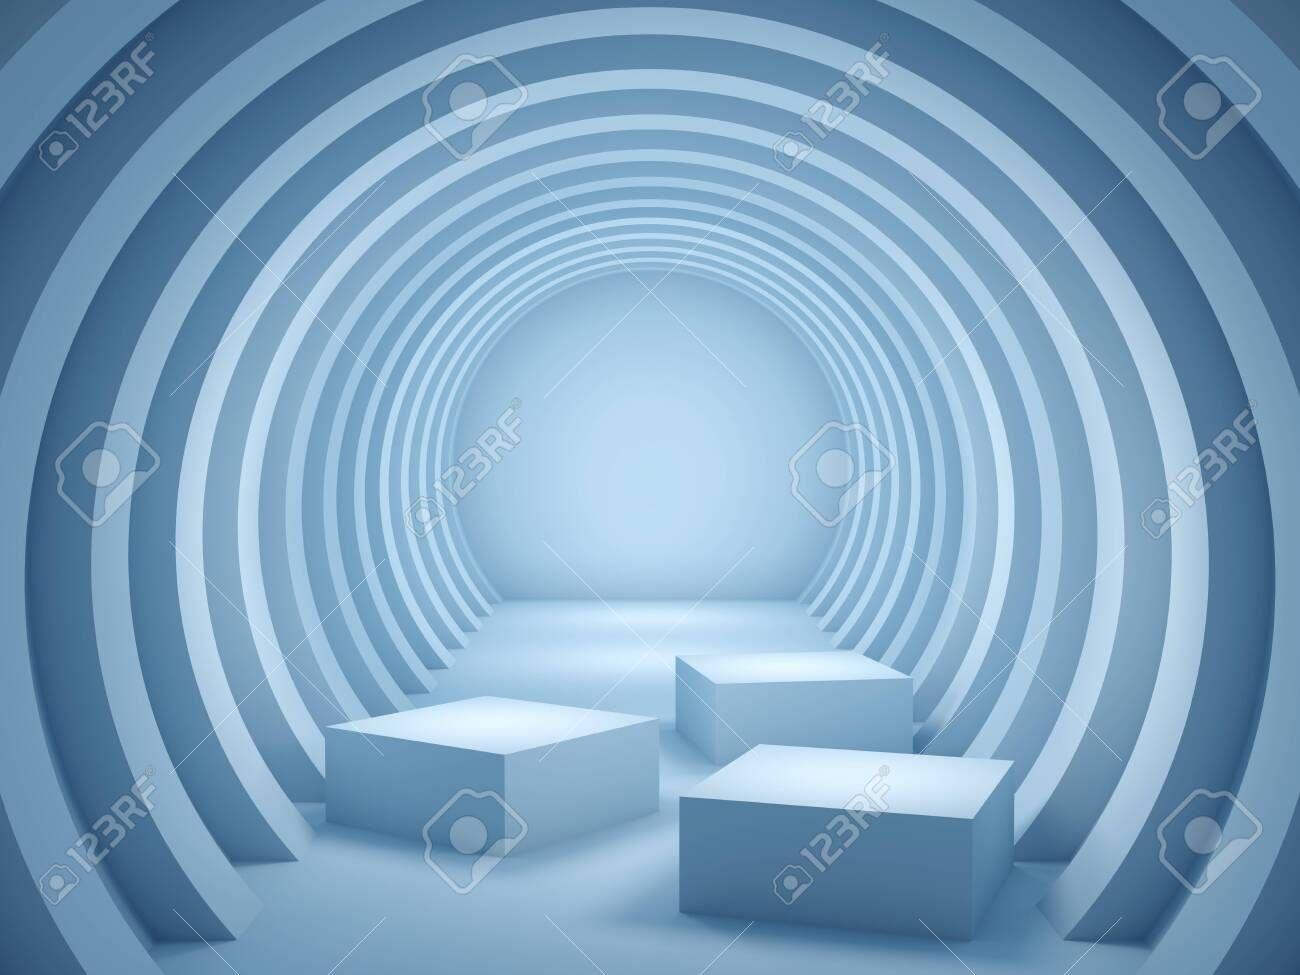 Stand for product round geometry tunnel blue colors 3D illustration rendering